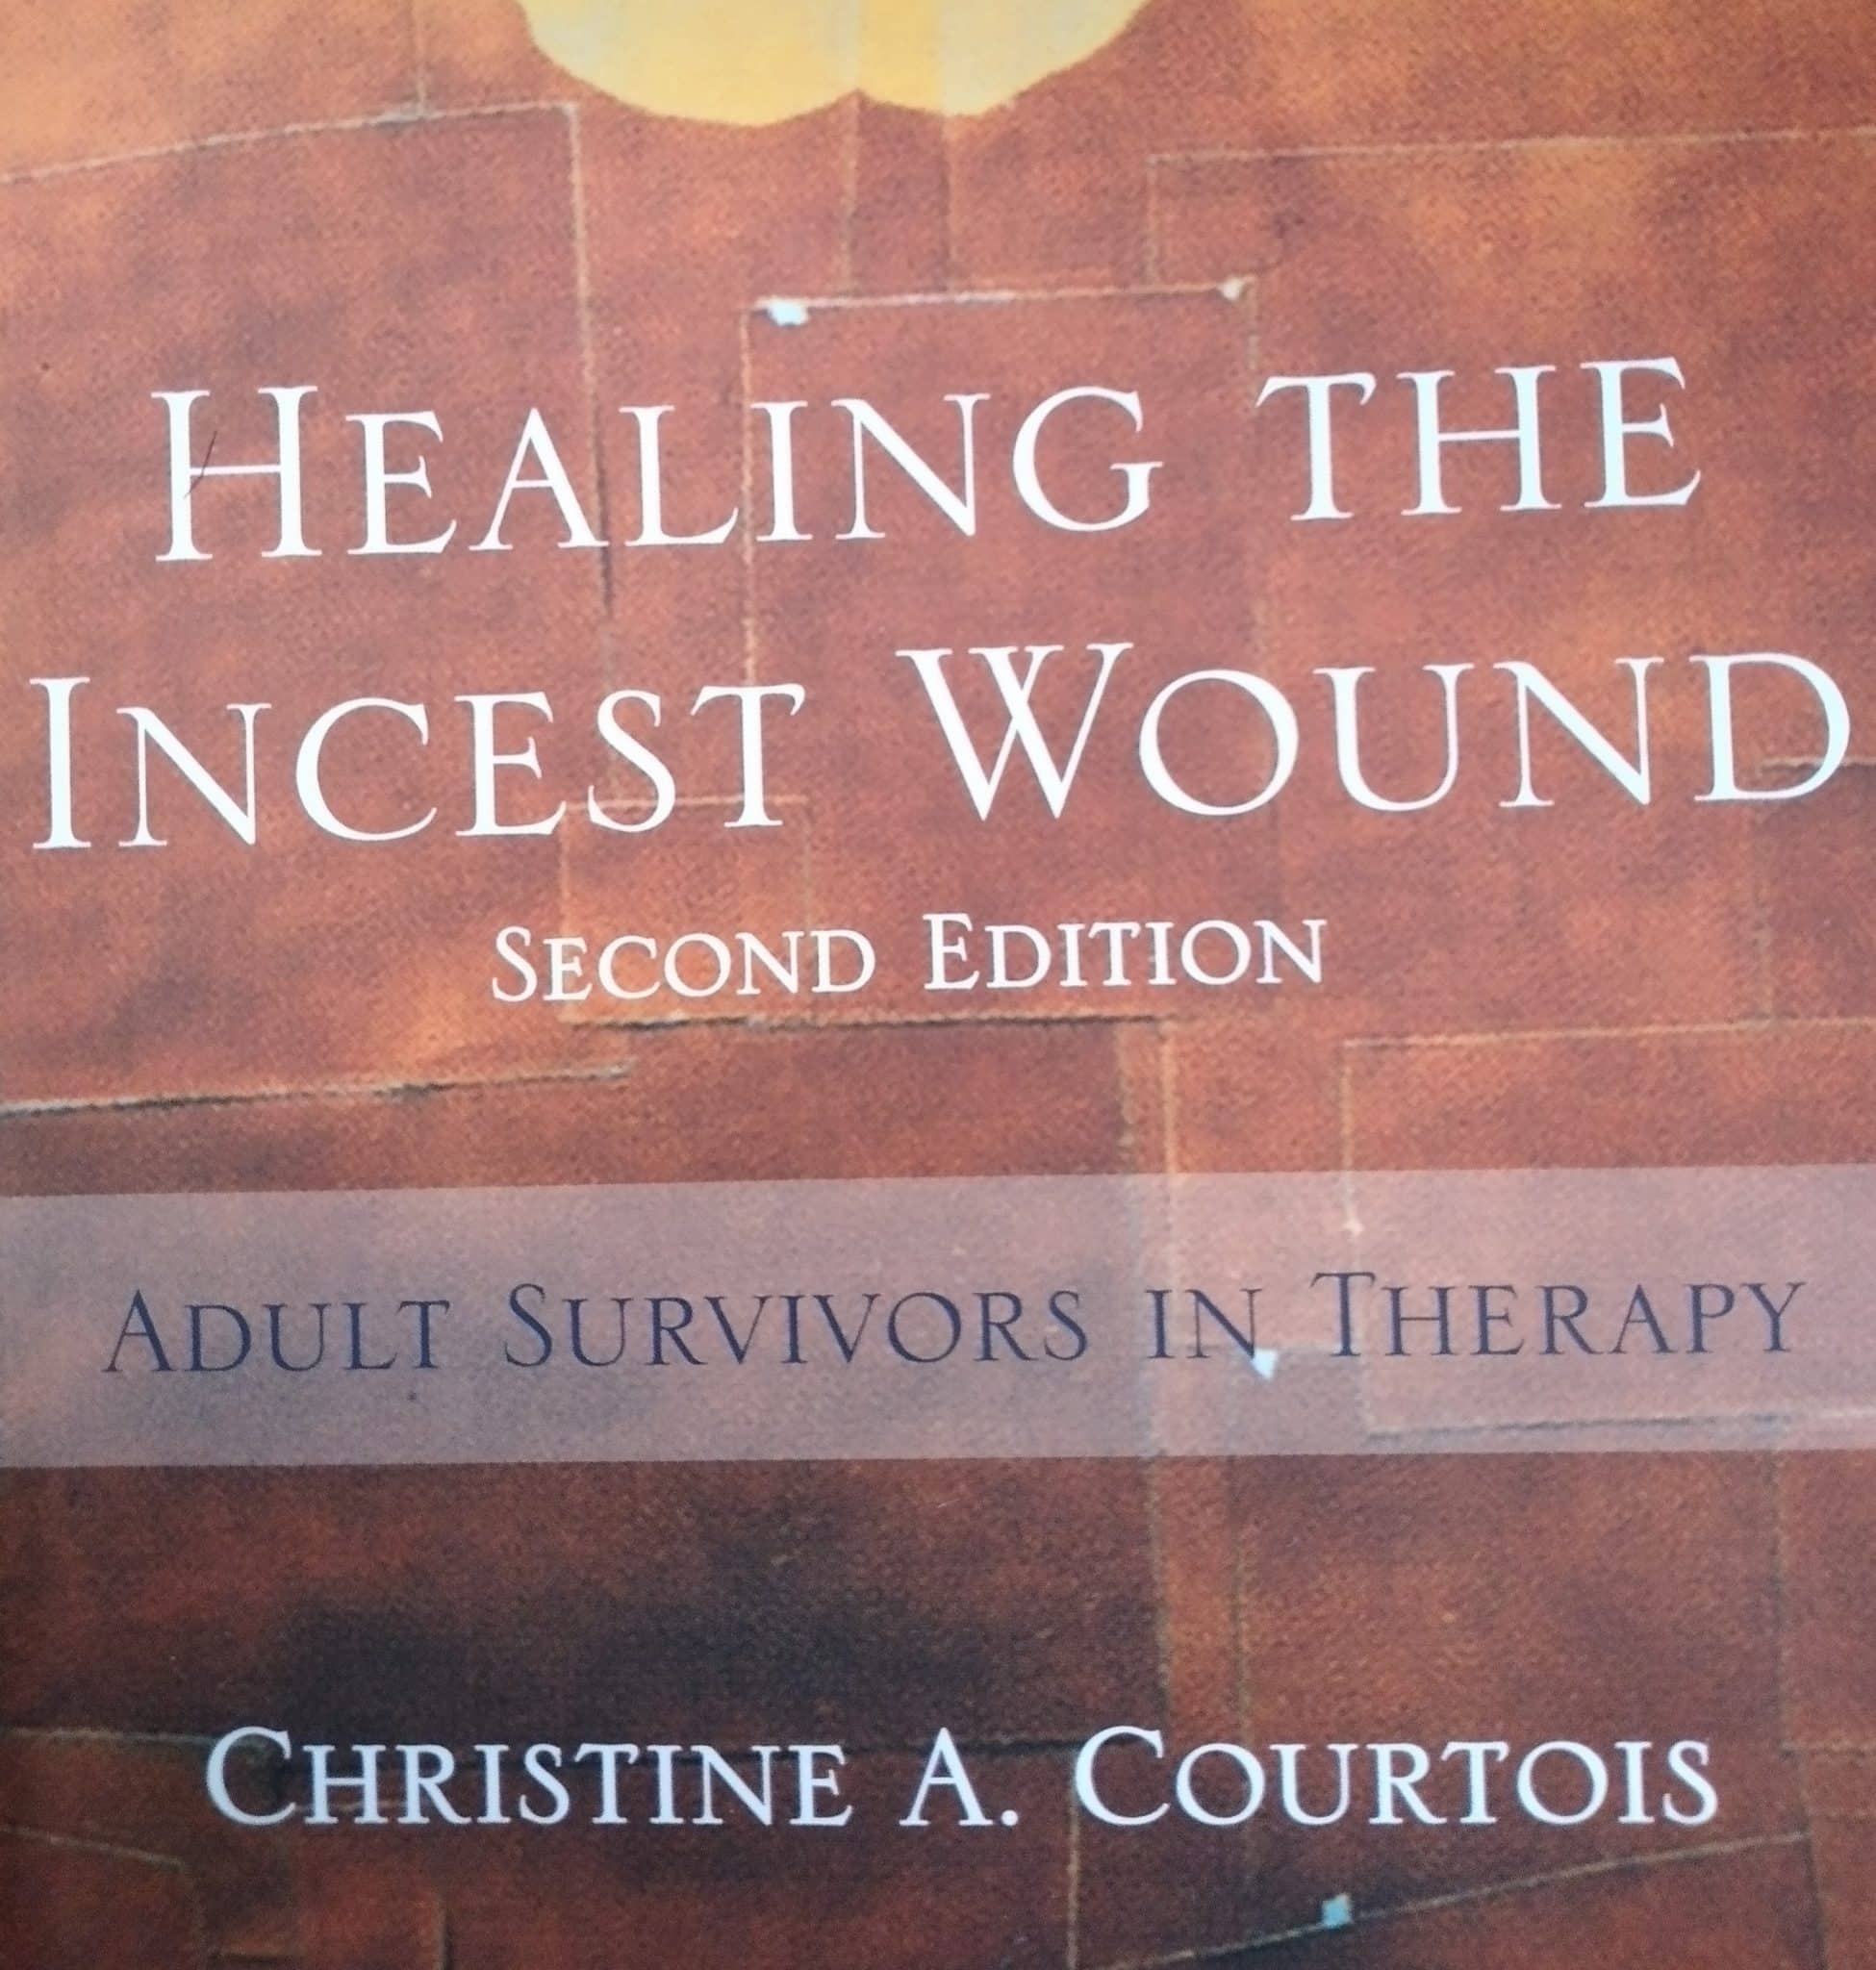 Healing The Incest Wound. Second Edition. Adult Survivors In Therapy